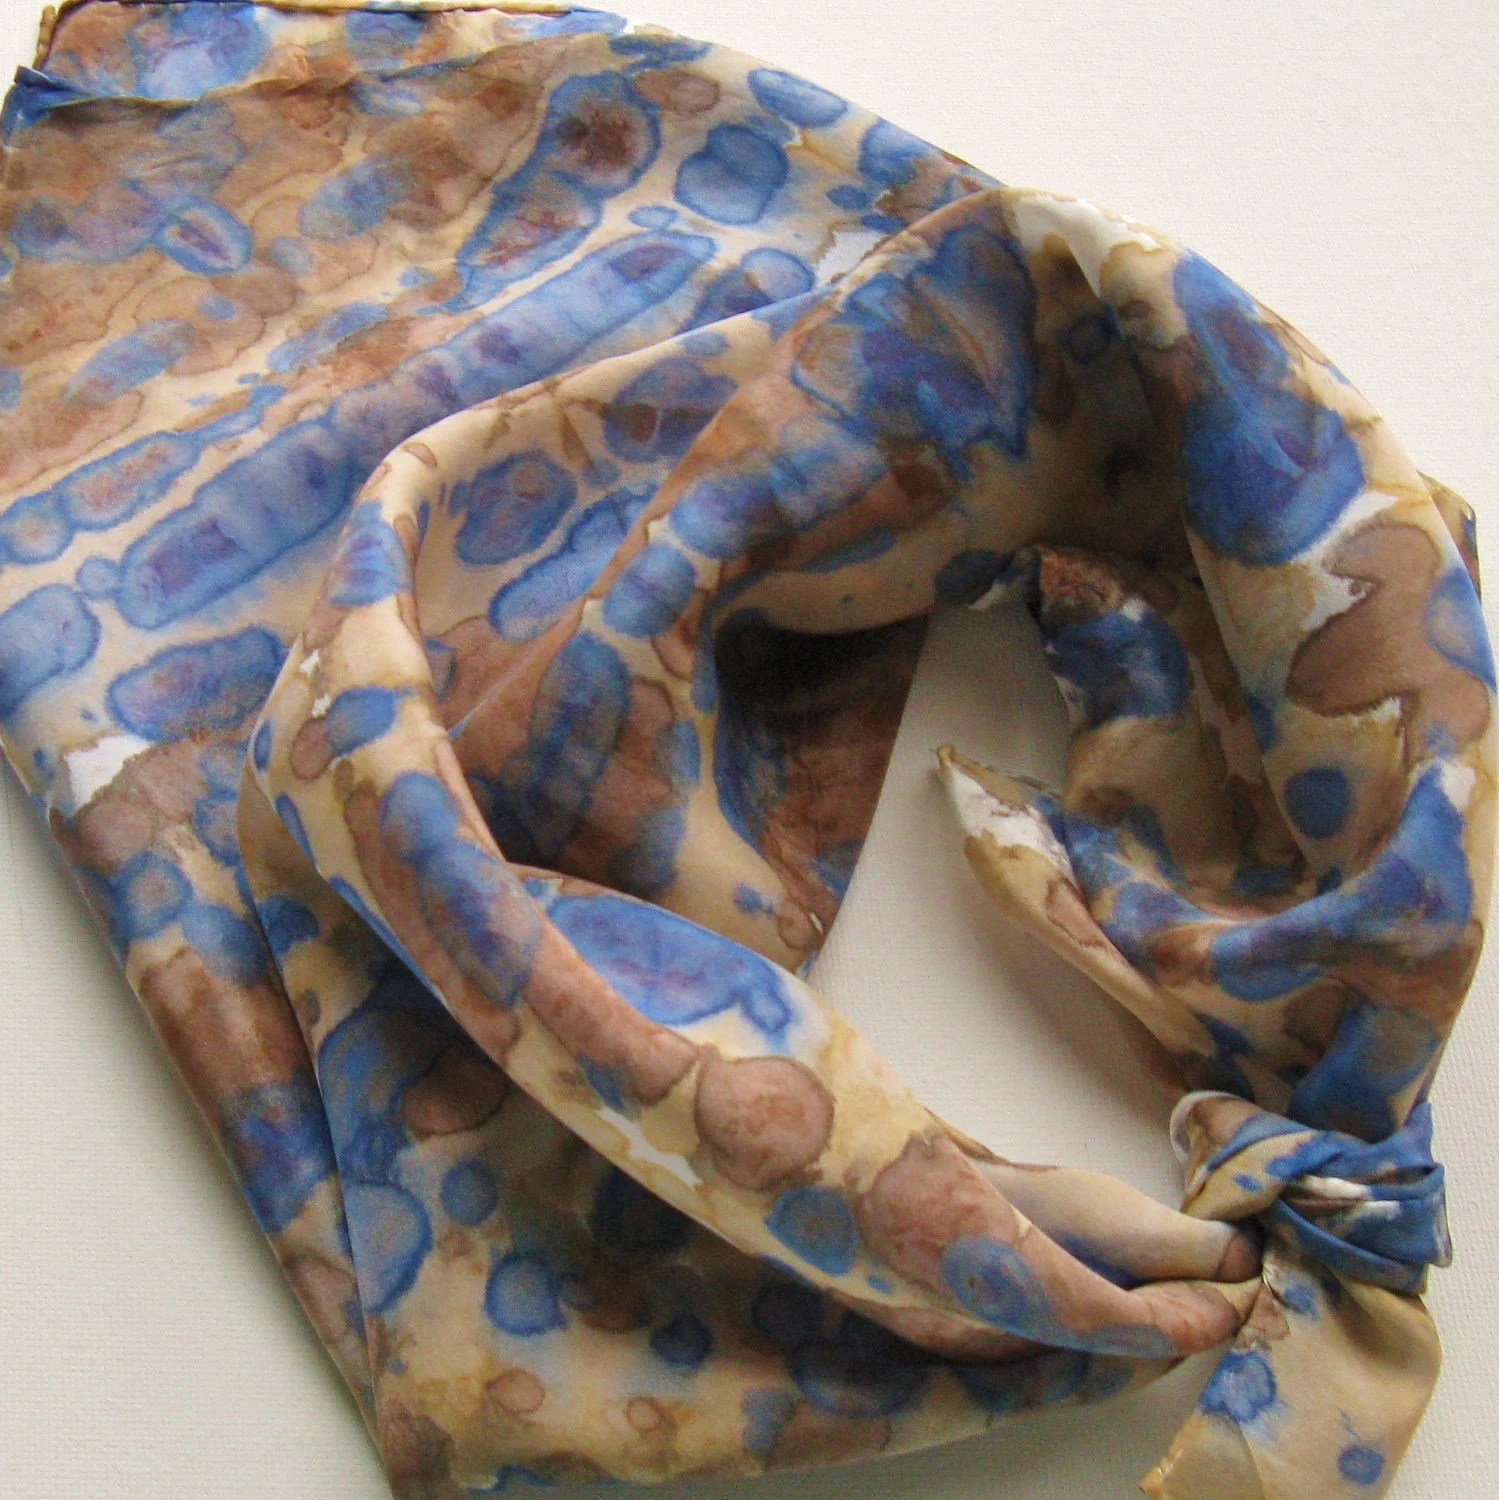 Silk Square Scarf - Lake Side - Hand Painted Ladies Scarves Bandana Tie Dyed Blue Navy Brown Tan White - Palettepassion